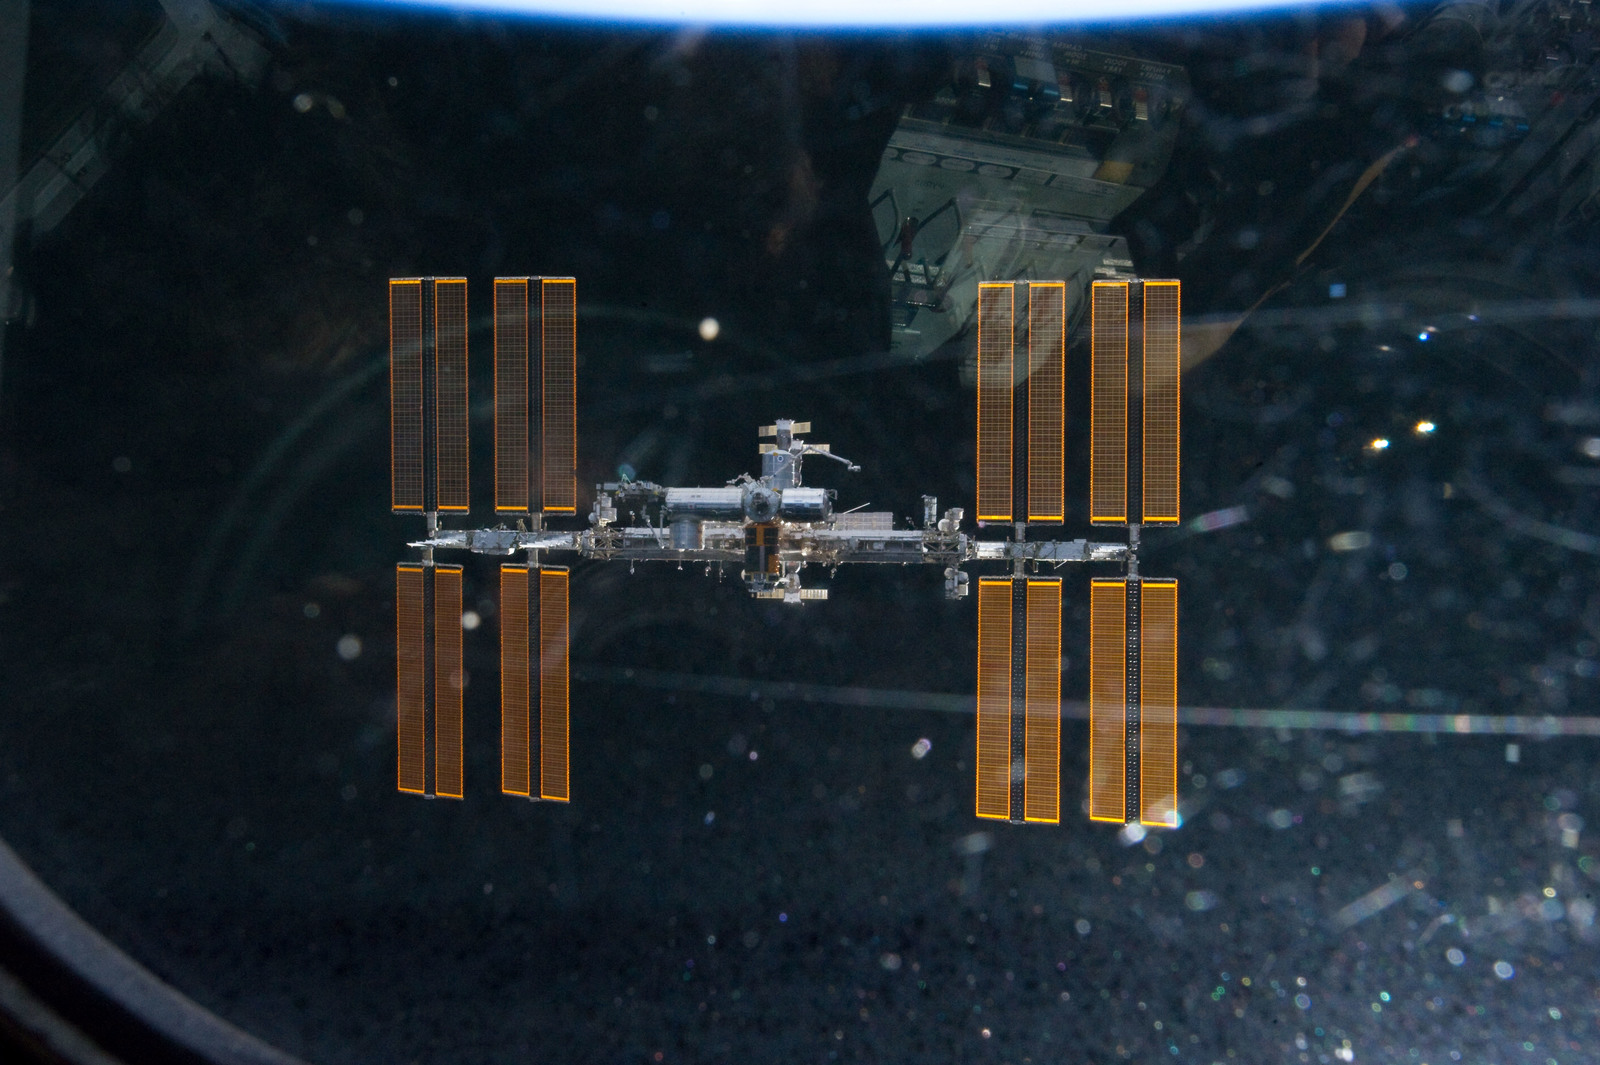 s133E011130 - STS-133 - Fly around view of ISS